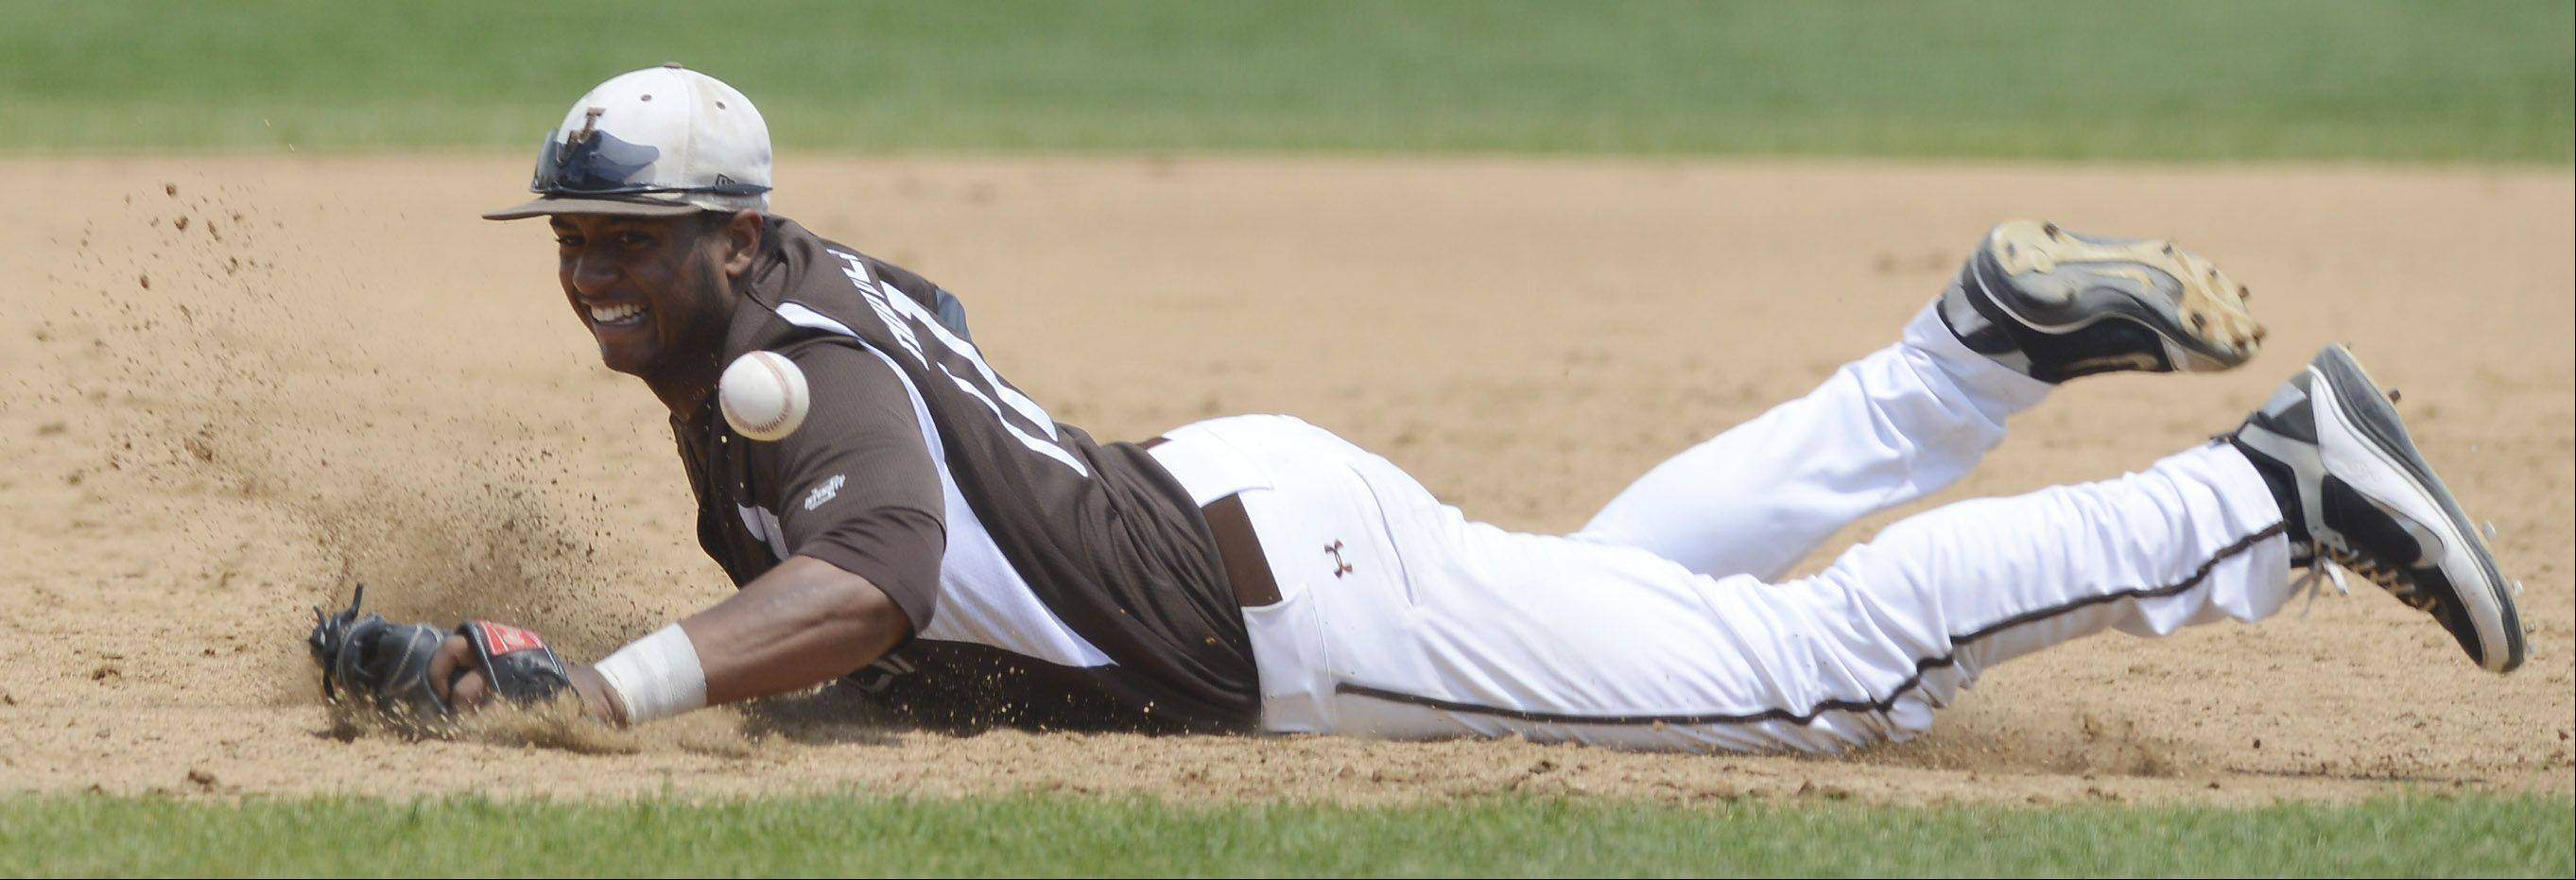 Joliet Catholic third baseman Ira Hughes dives for a ground ball that went for a St. Francis hit during the Class 3A state baseball championship game at Silver Cross Field in Joliet Saturday.